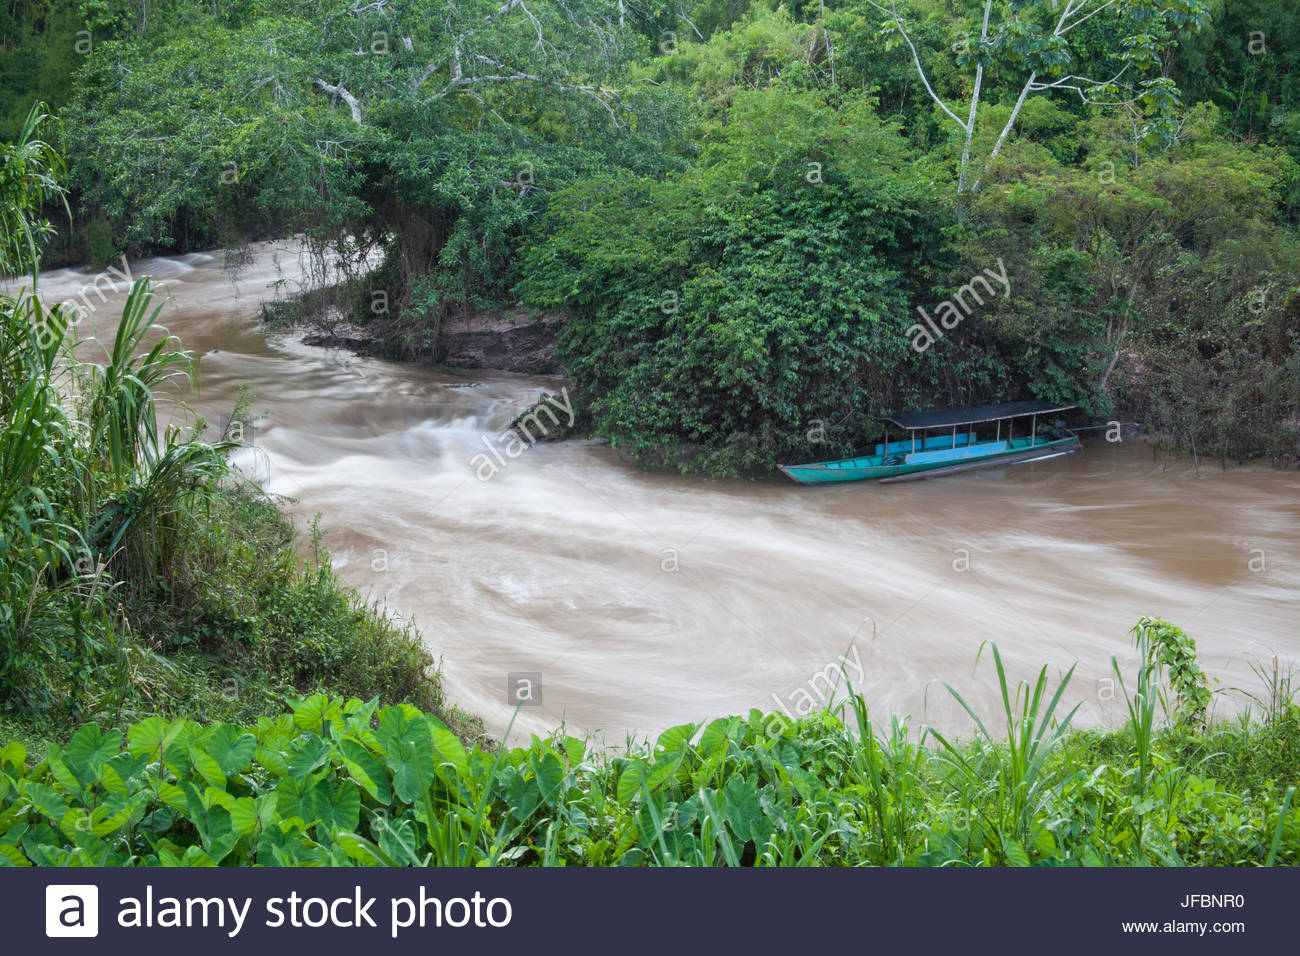 A boat anchored in a swiftly-moving stream that feeds into the Tambopata River. - Stock Image